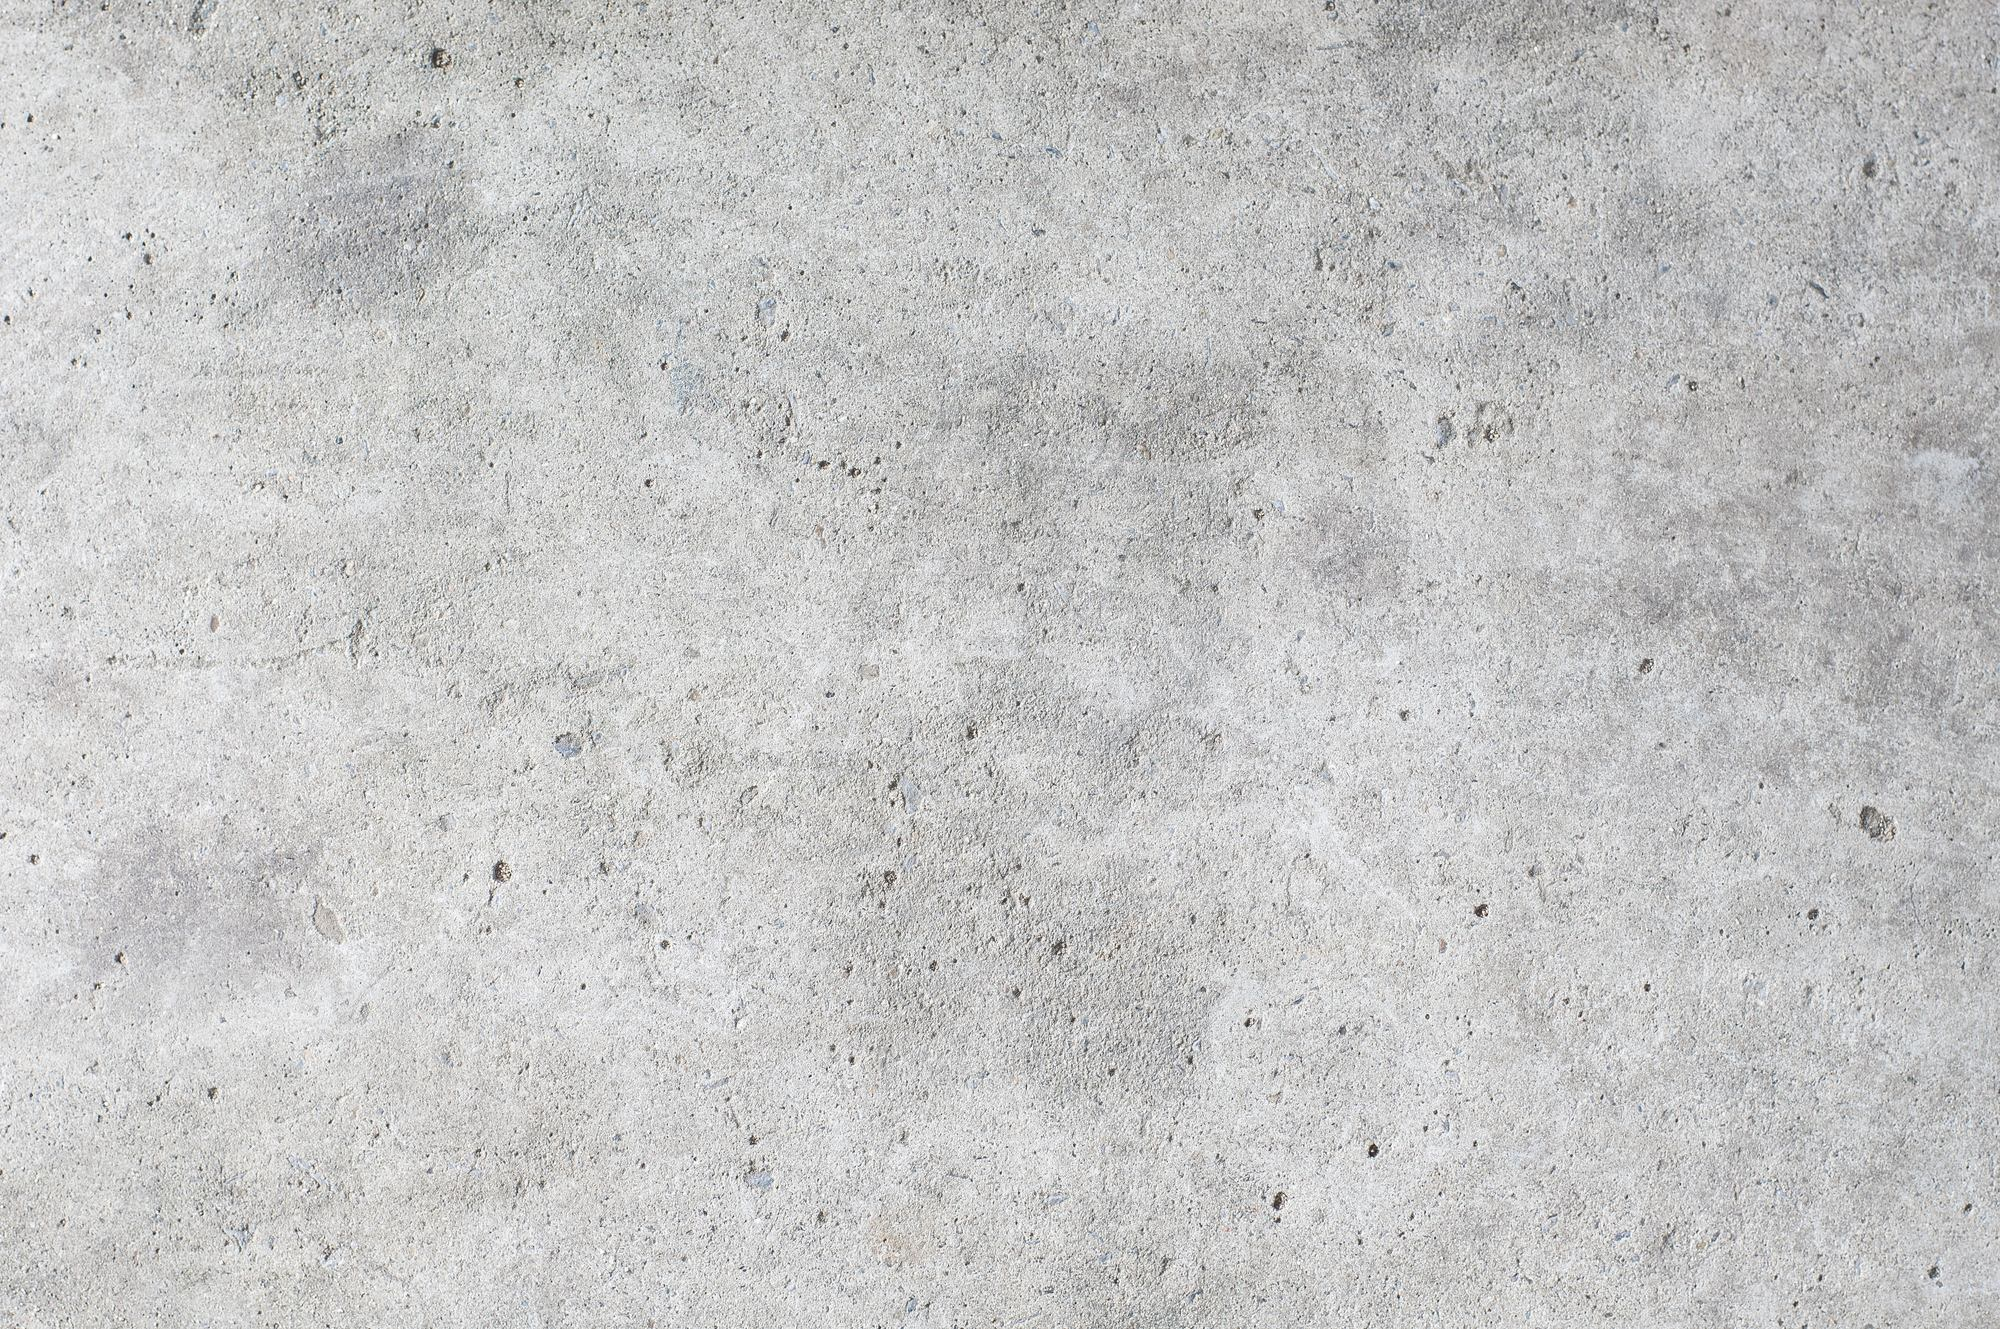 Background of aged concrete wall texture